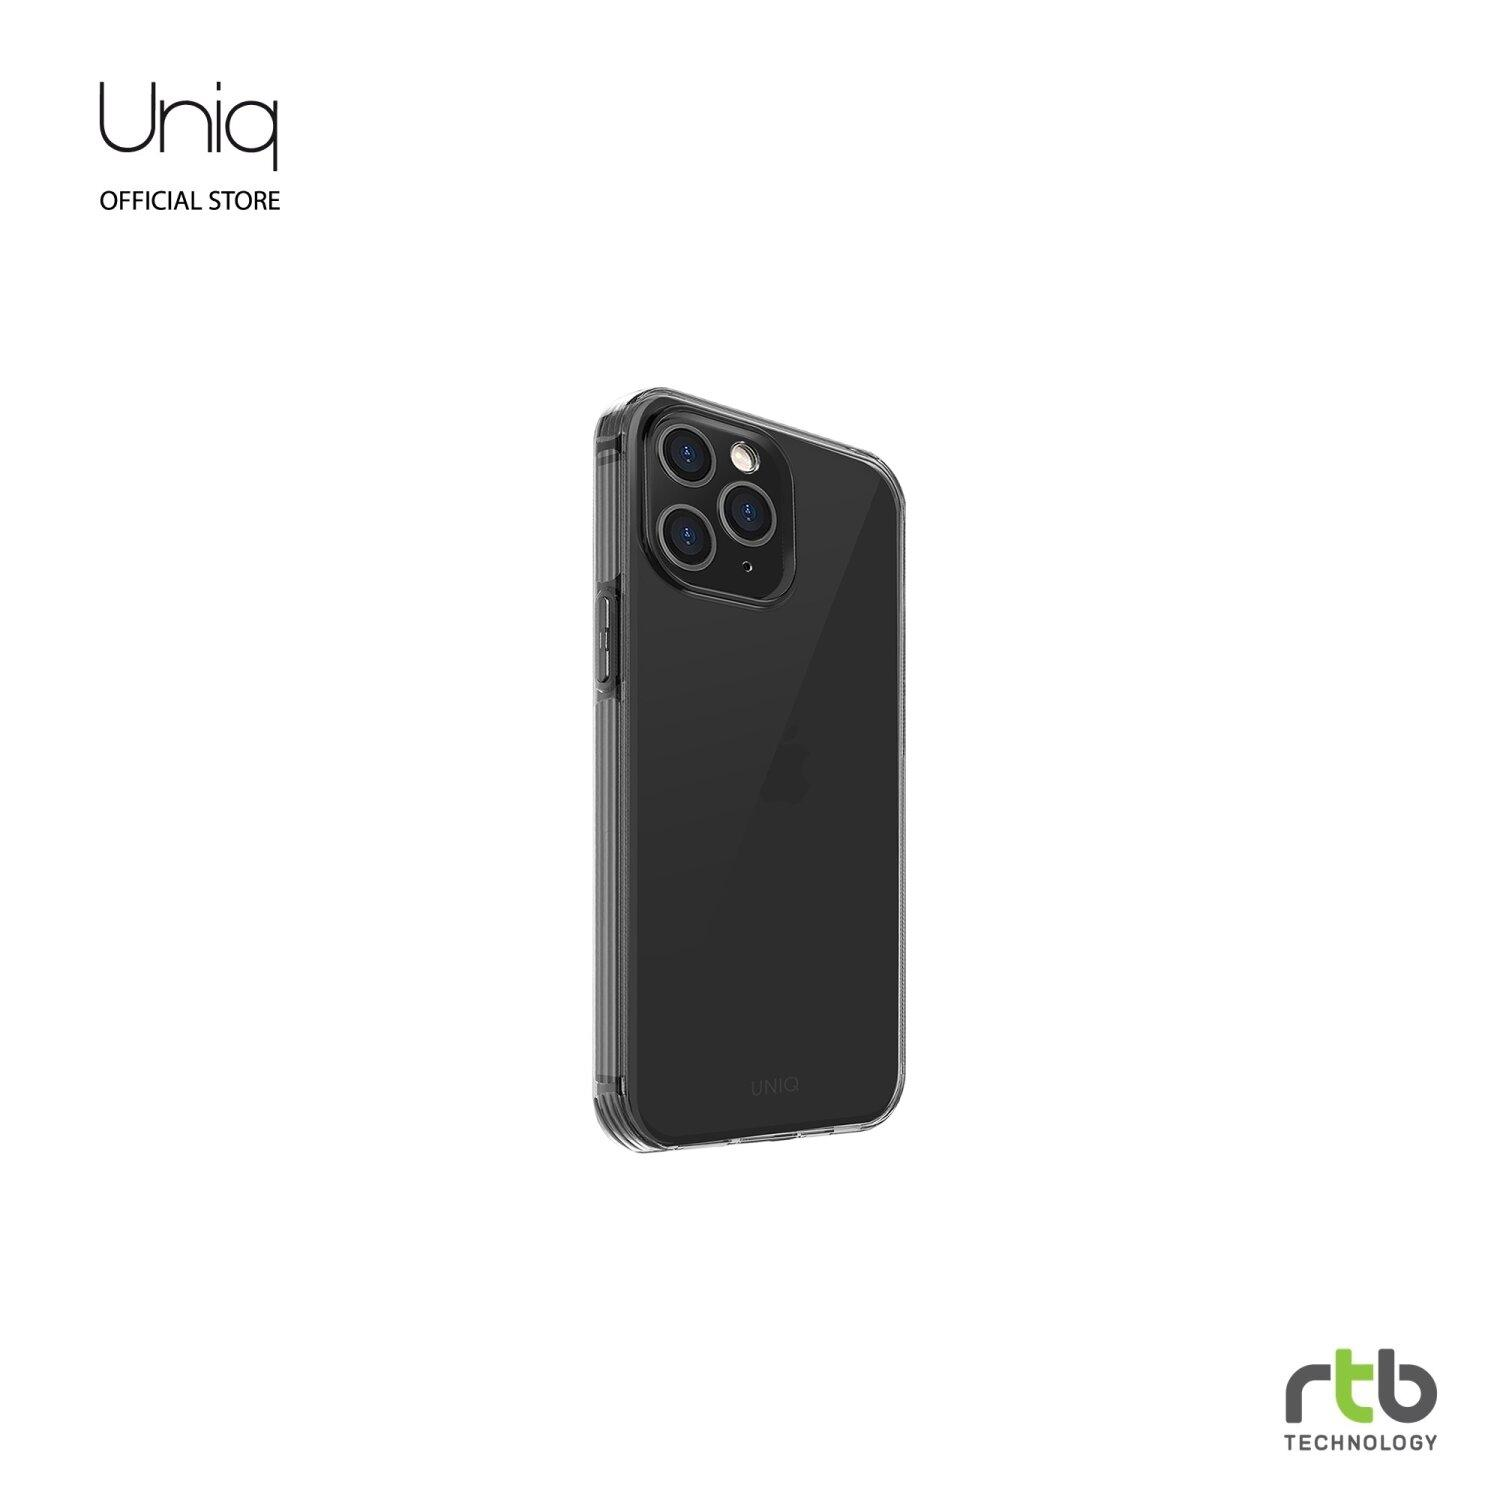 Uniq Hybrid เคส iPhone 12 PRO MAX(6.7) Anti Microbial รุ่น Air Fender - Smoke Grey